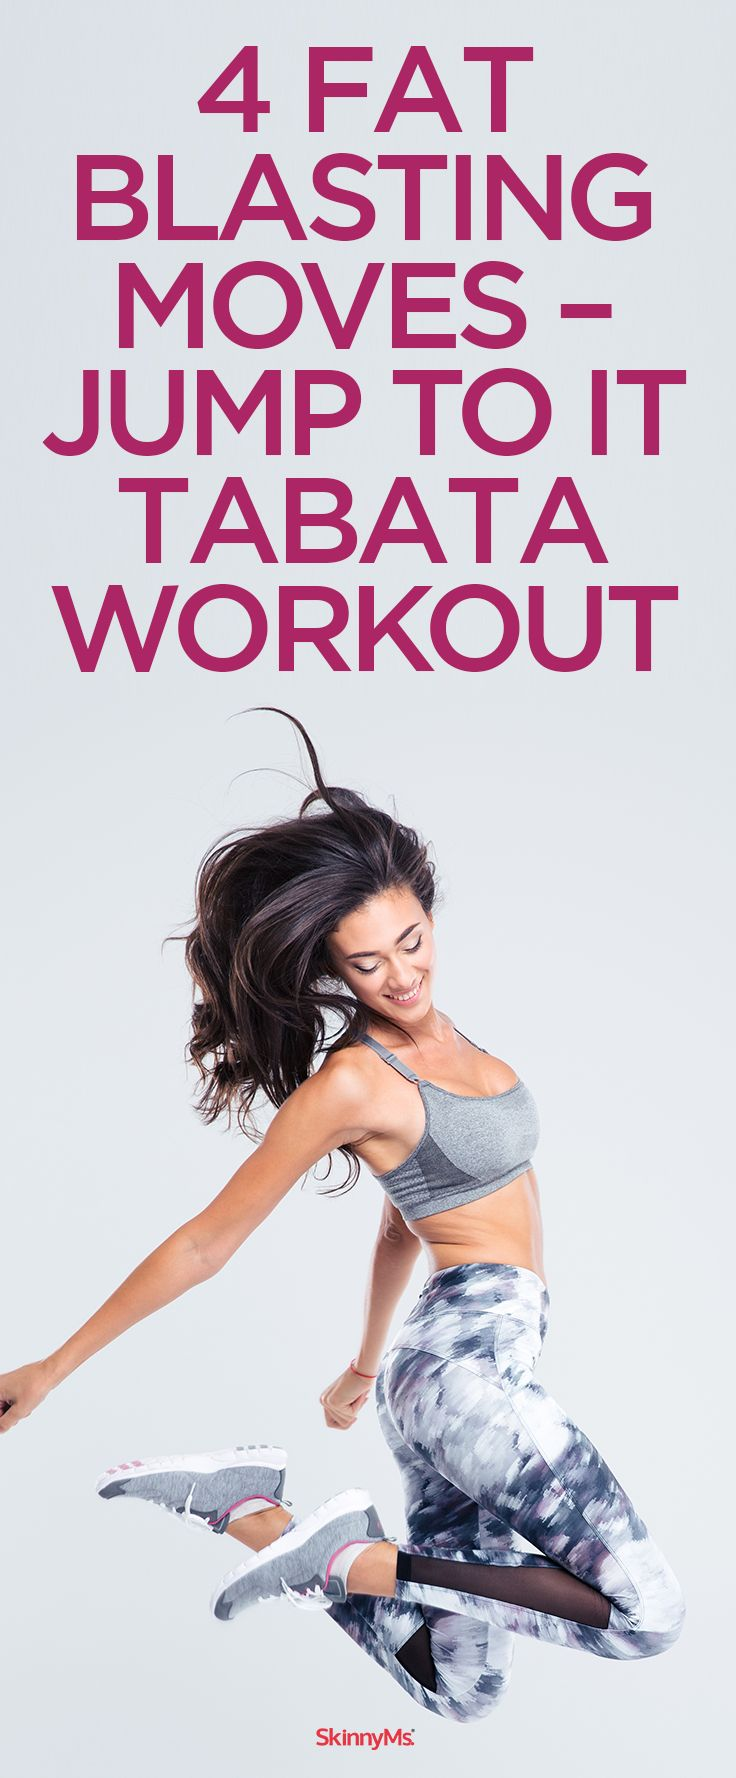 4 Fat-Blasting Moves Jump to It Tabata Workout #tabata #miniworkout